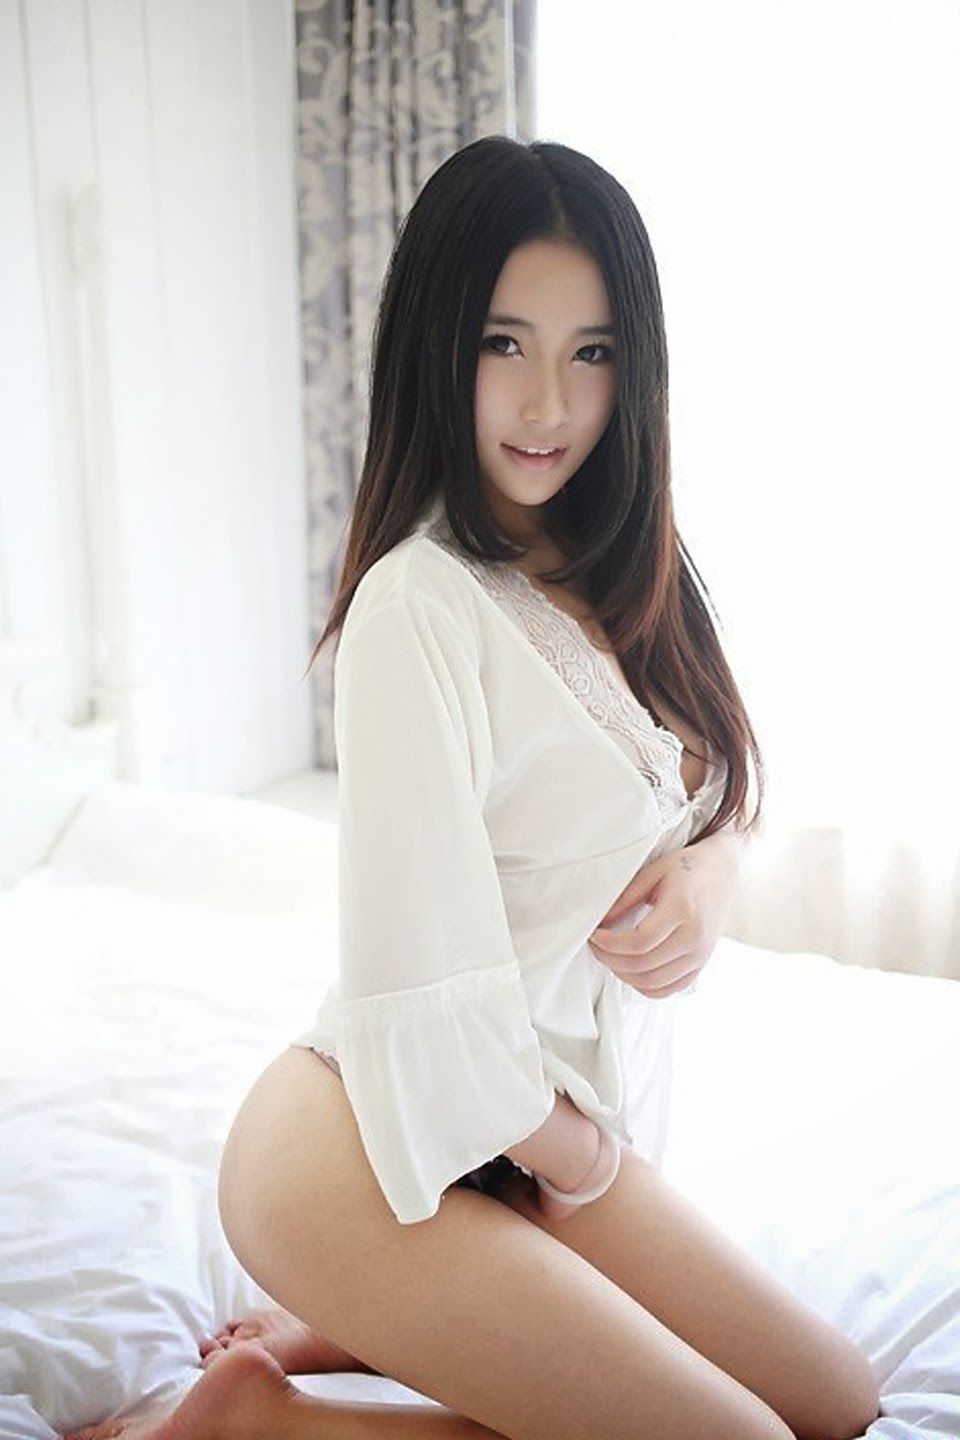 Pics of sexy asian girls